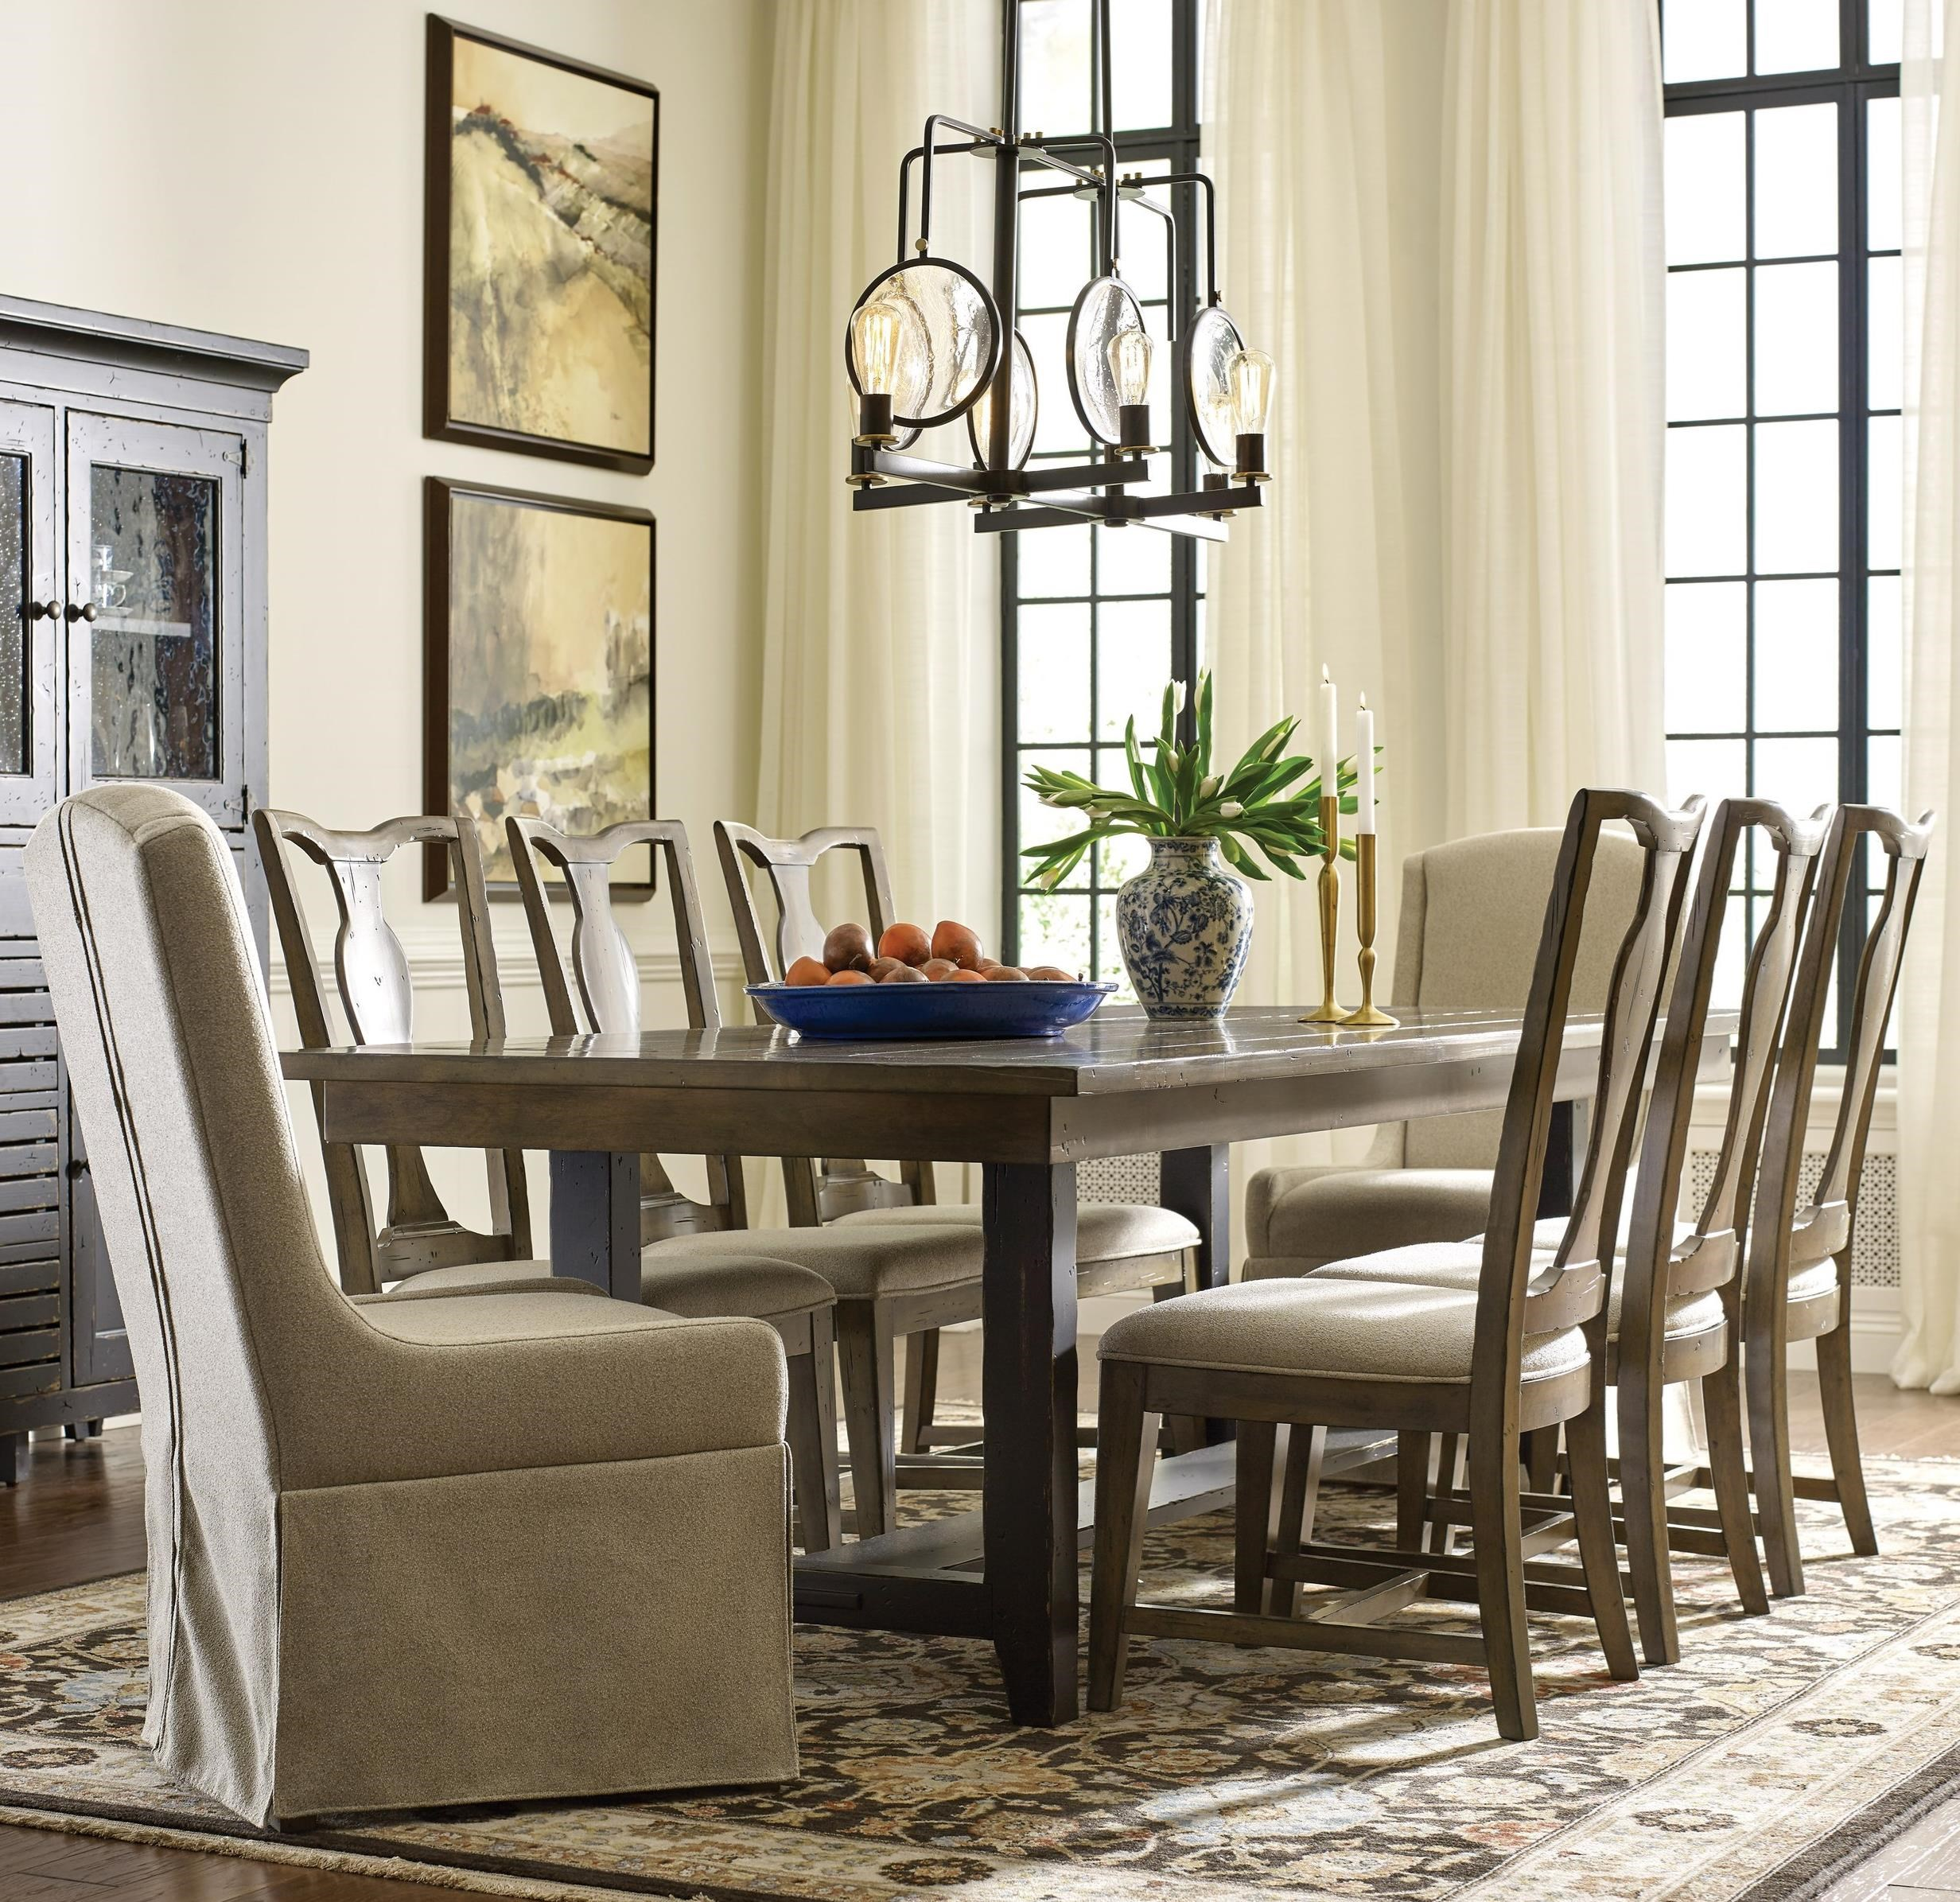 Mill House Dining Table and Chair Set for 8 by Kincaid Furniture at Johnny Janosik